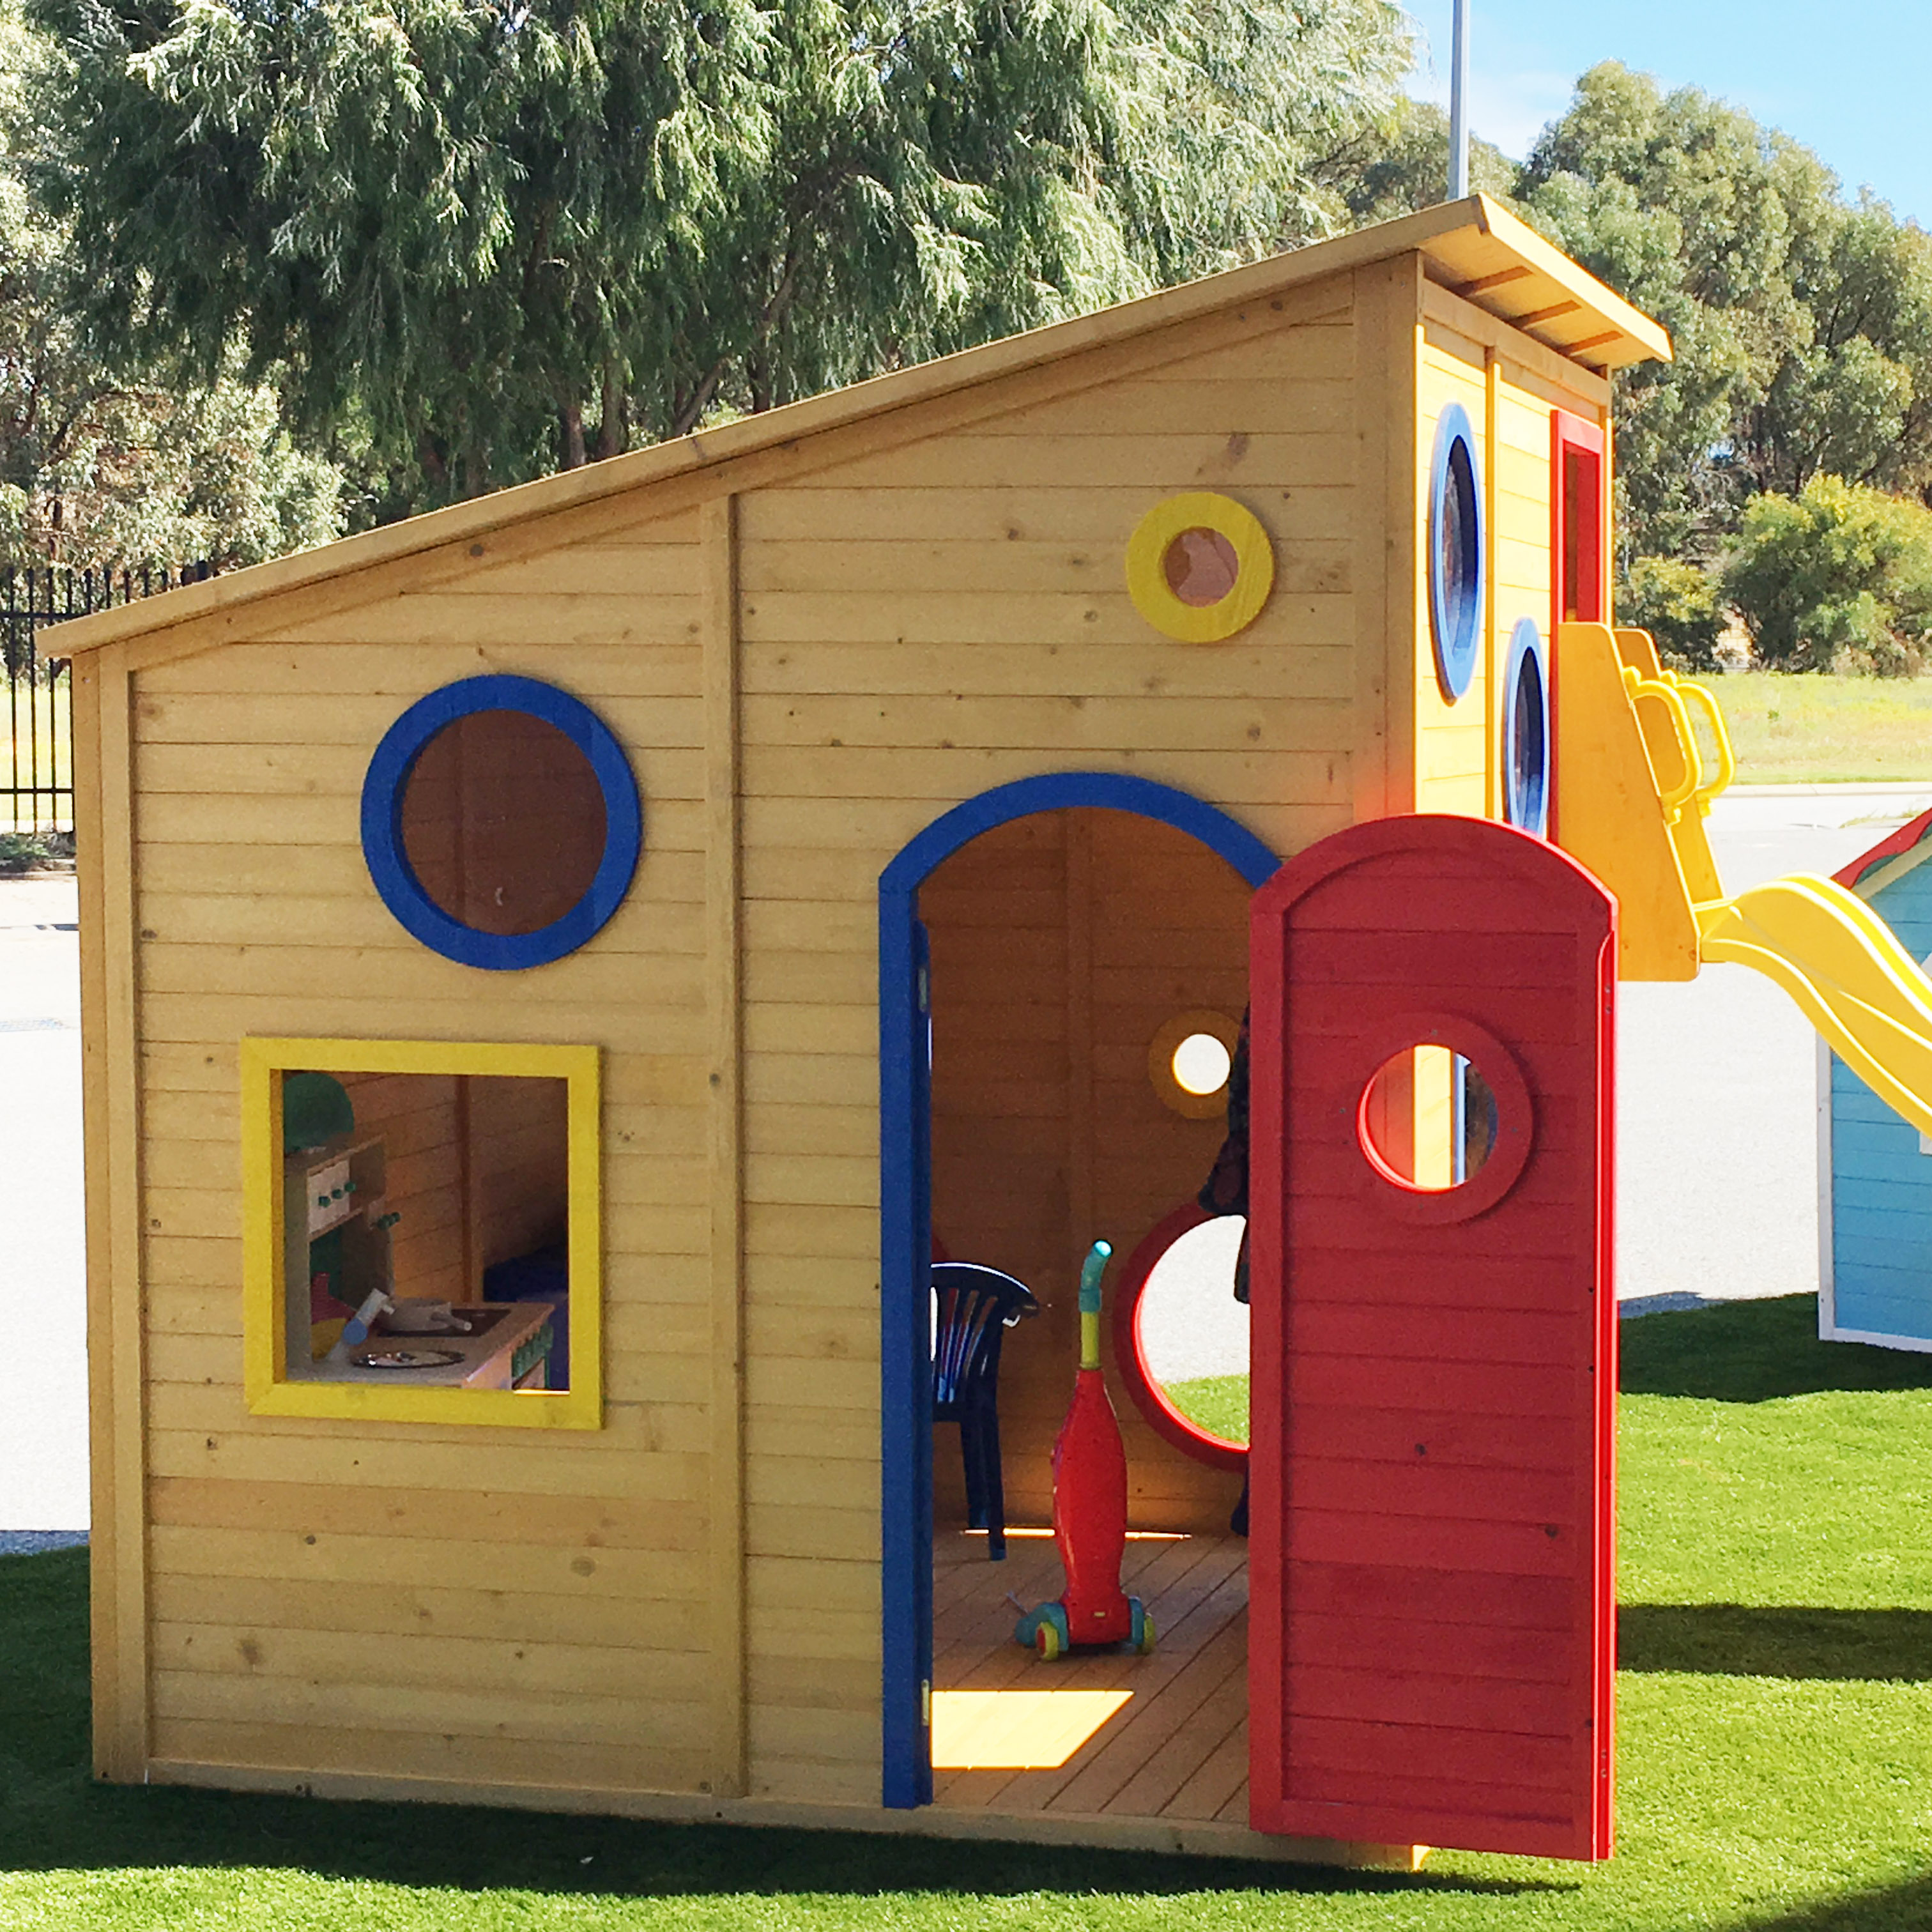 Kids Ground Level Wooden Happy Shack Cubby House Play House Fort